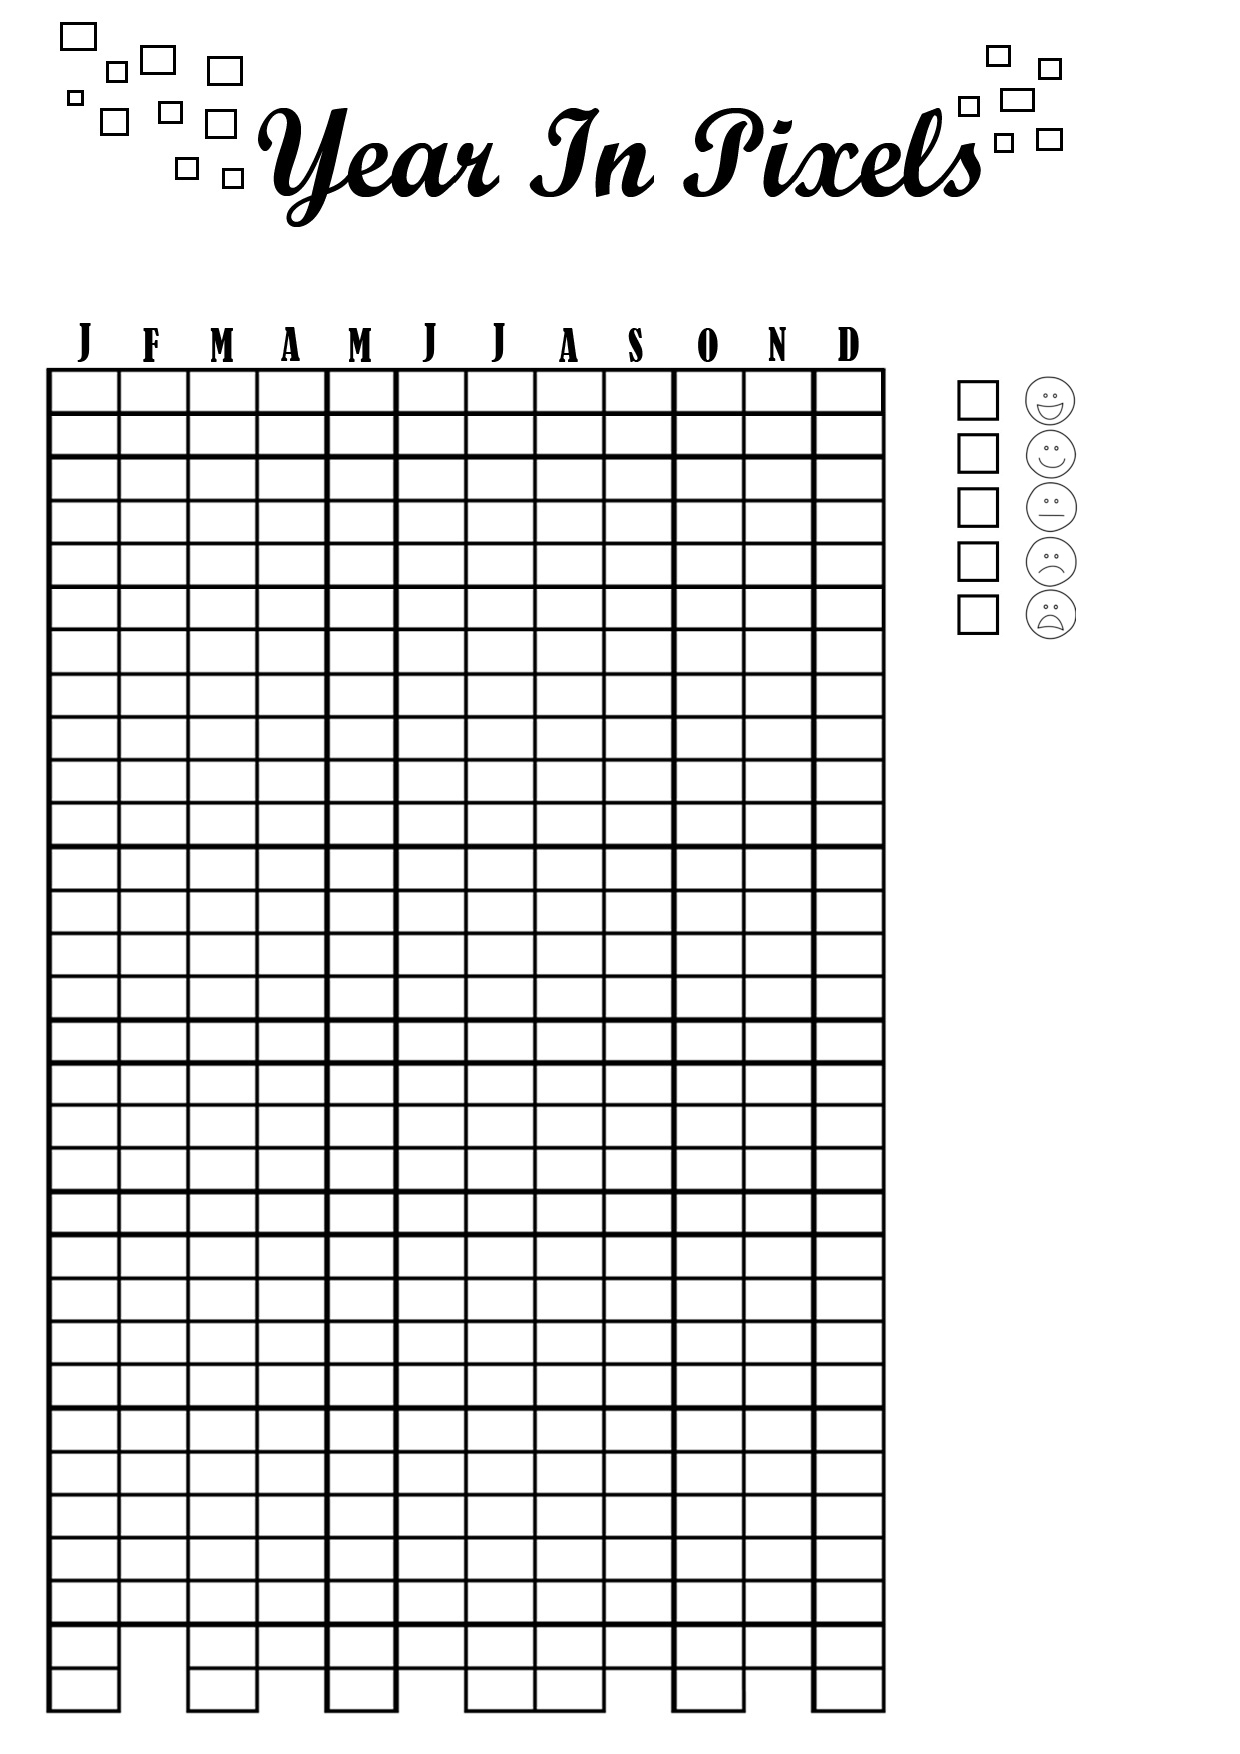 picture regarding Year in Pixels Printable called Calendar year within just Pixels! Do it yourself Printables